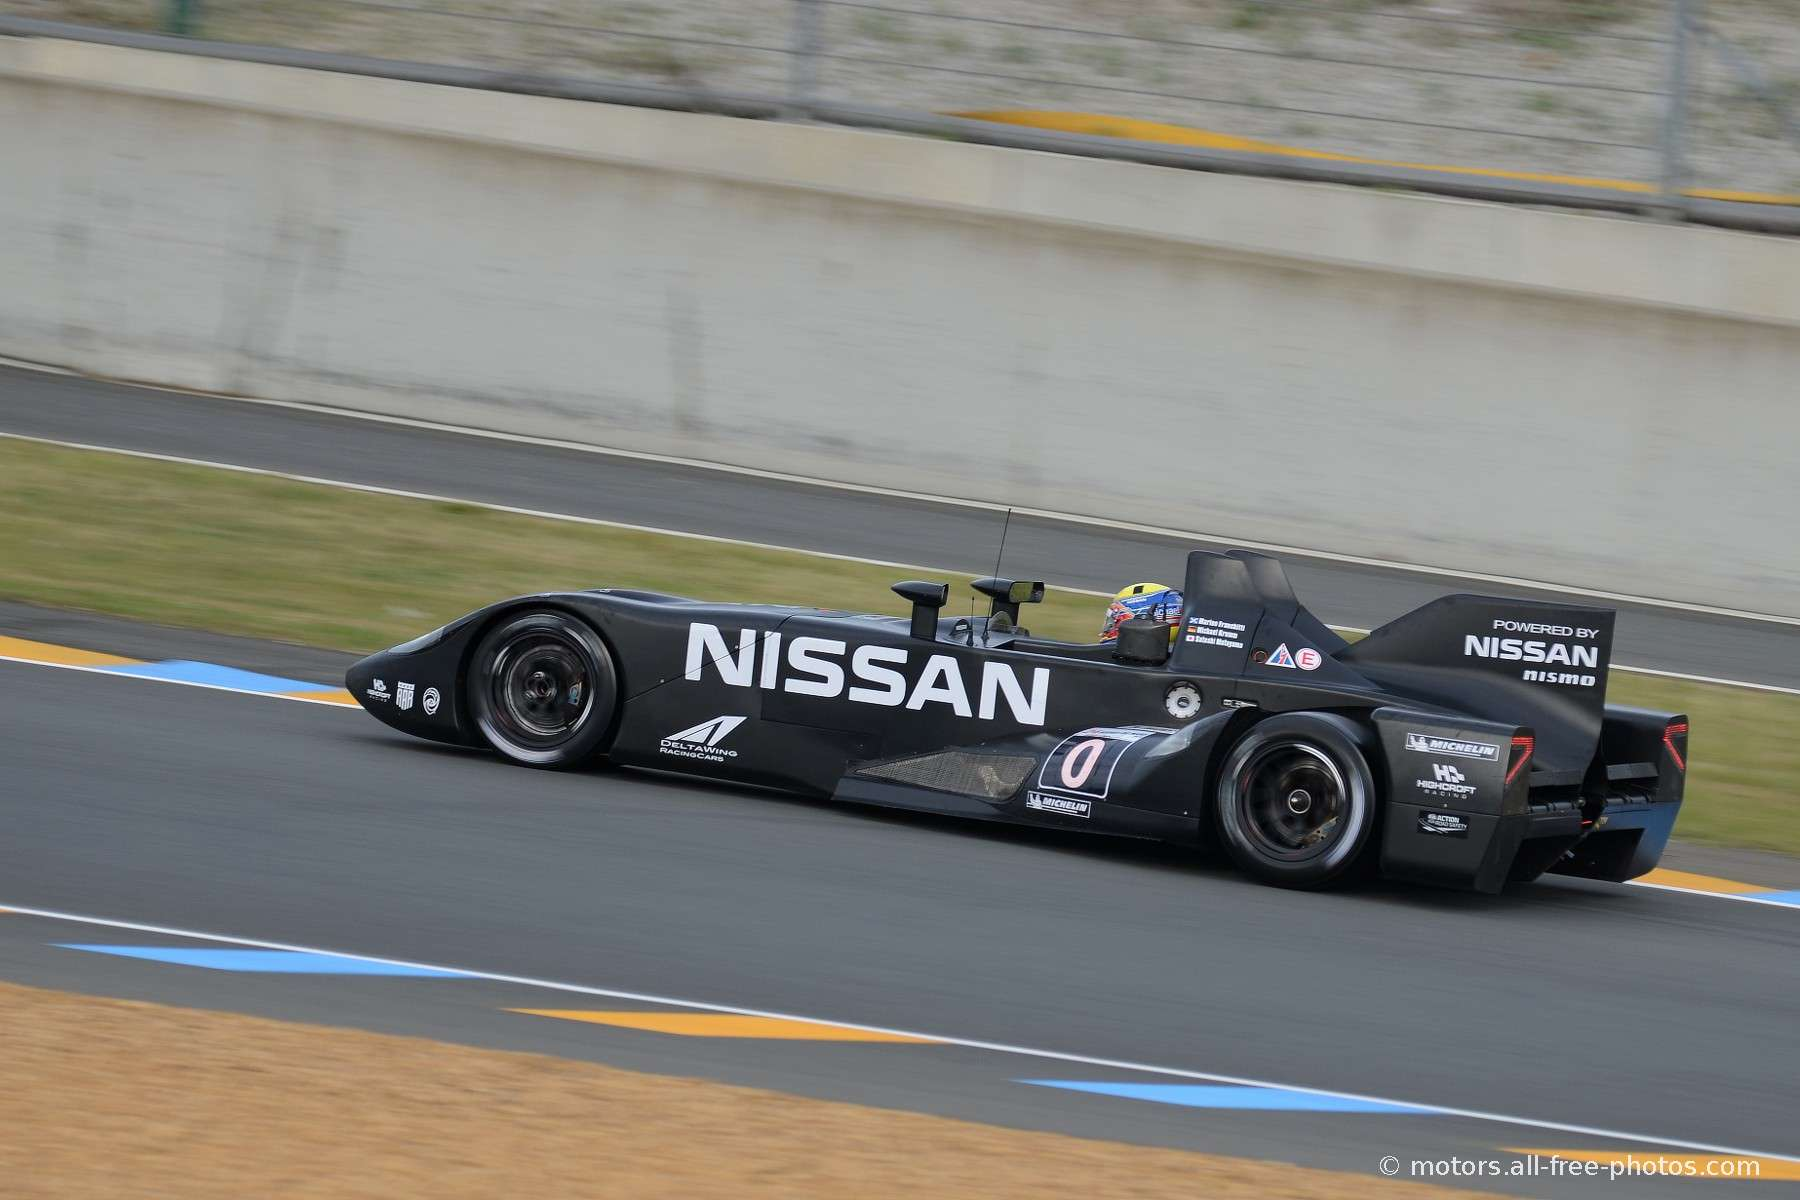 Delta Wing Nissan - Team Highcroft Racing